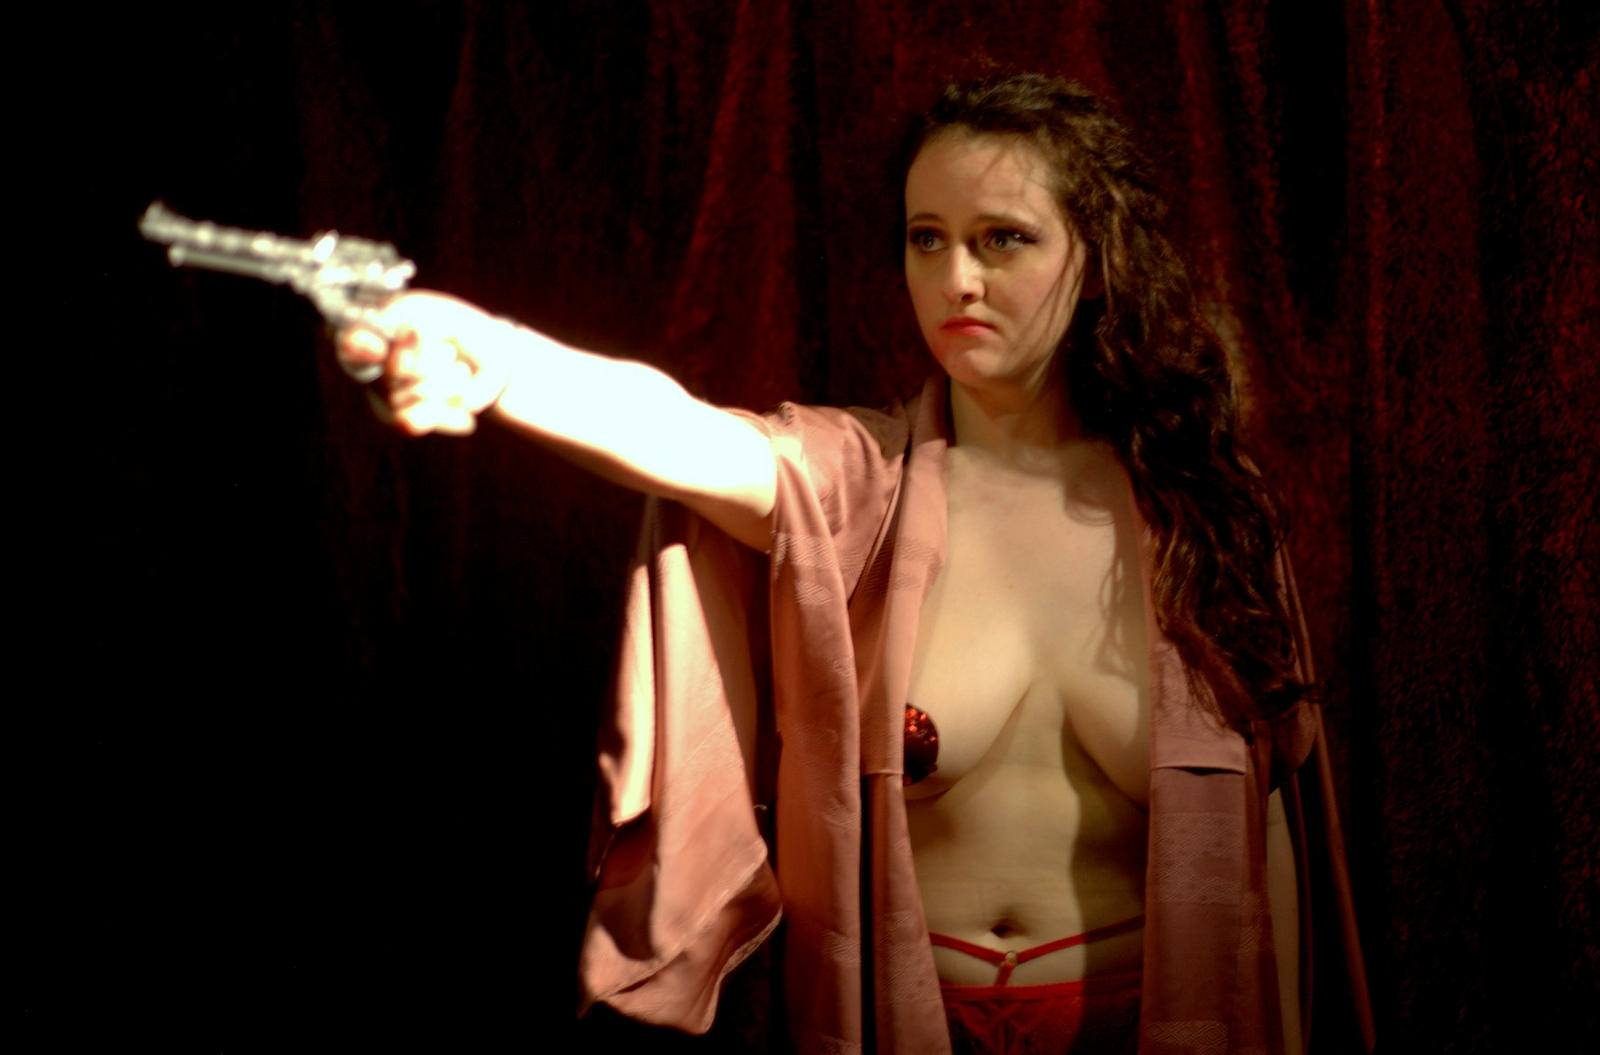 A half-naked girl pointing a gun on stage at Camden Fringe